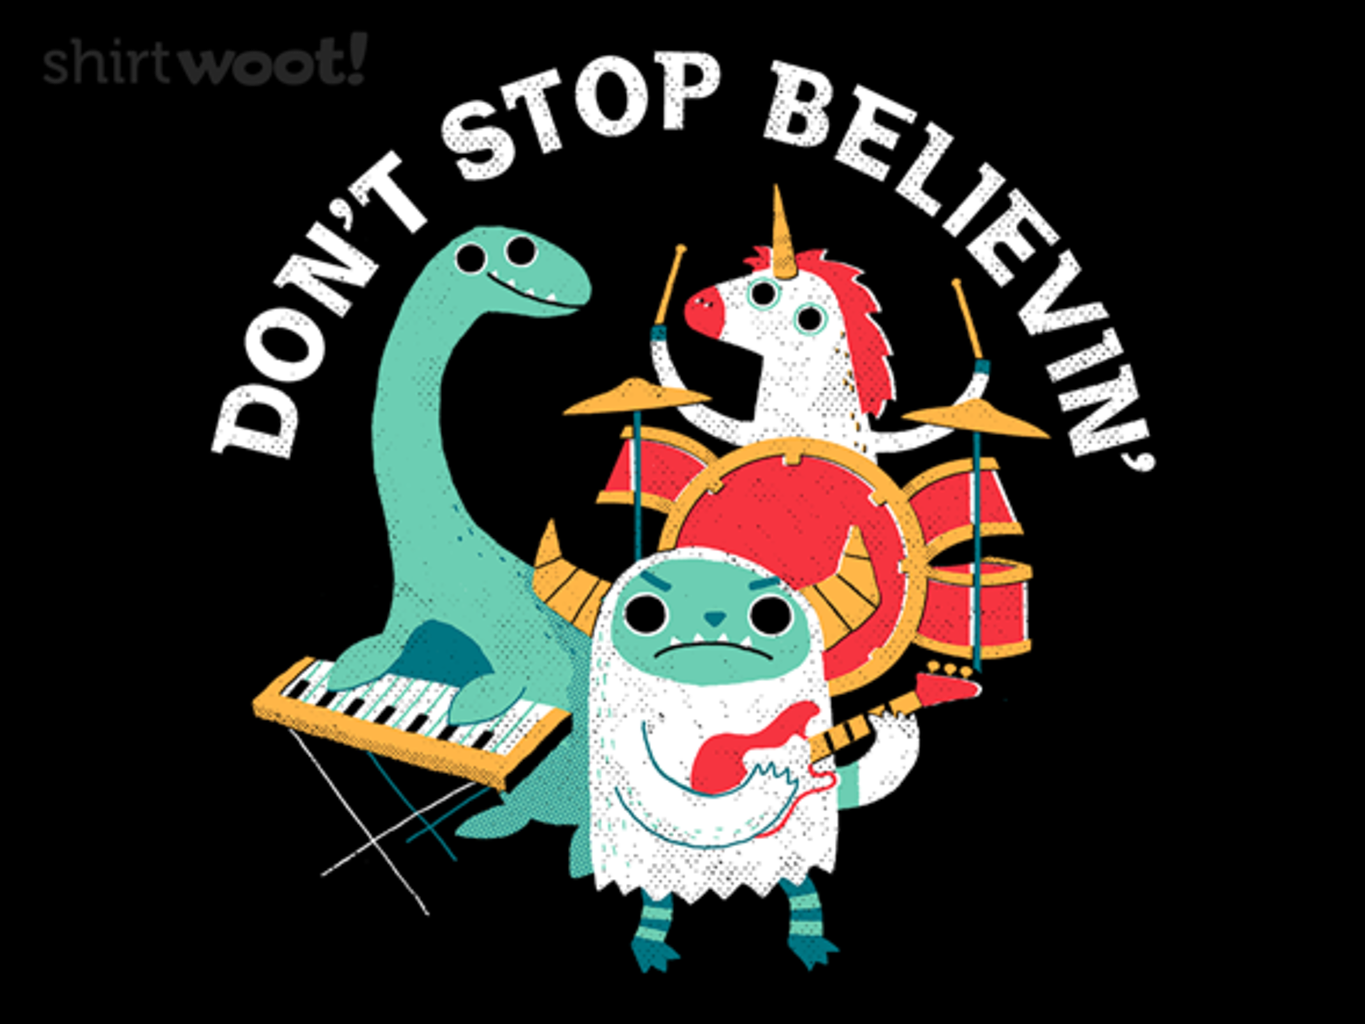 Woot!: Don't Stop Believin' (In Us)